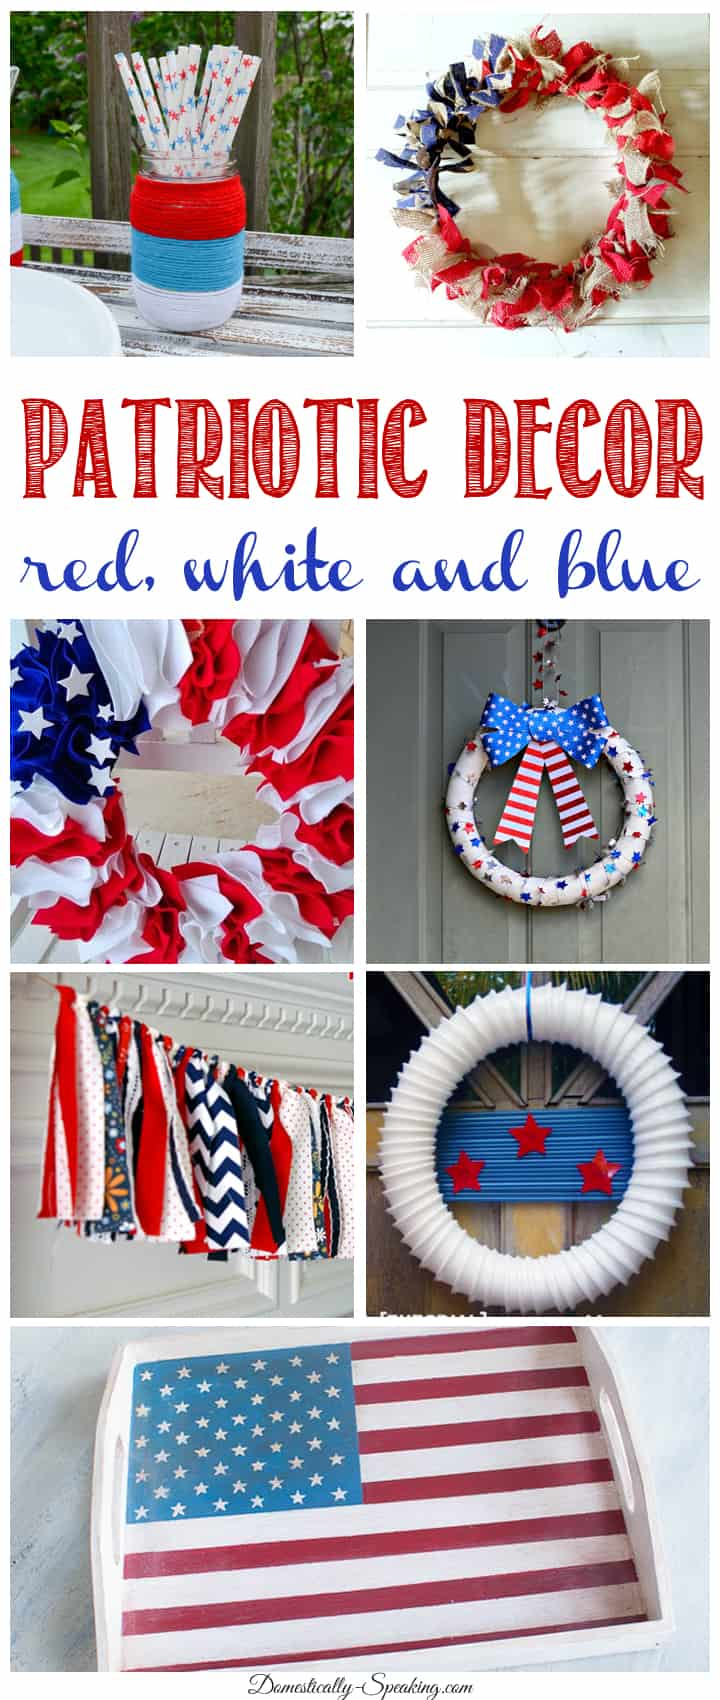 Patriotic Decor Idea..